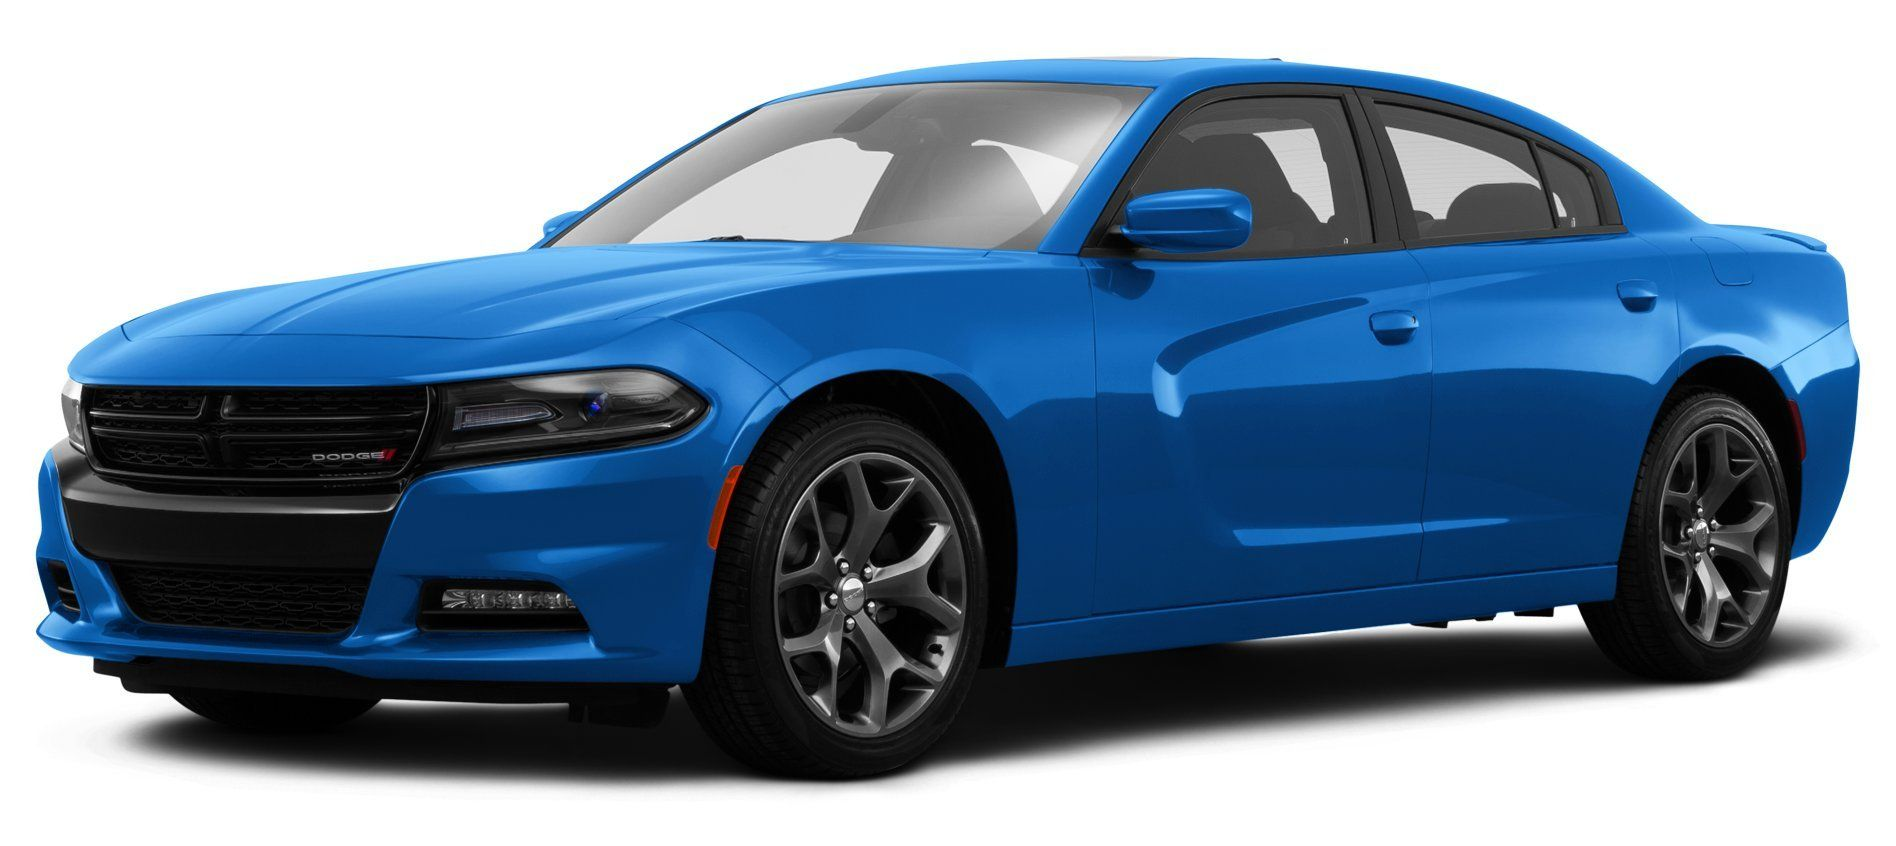 2016 Dodge Charger Srt Hellcat 4 Door Sedan Rear Wheel Drive